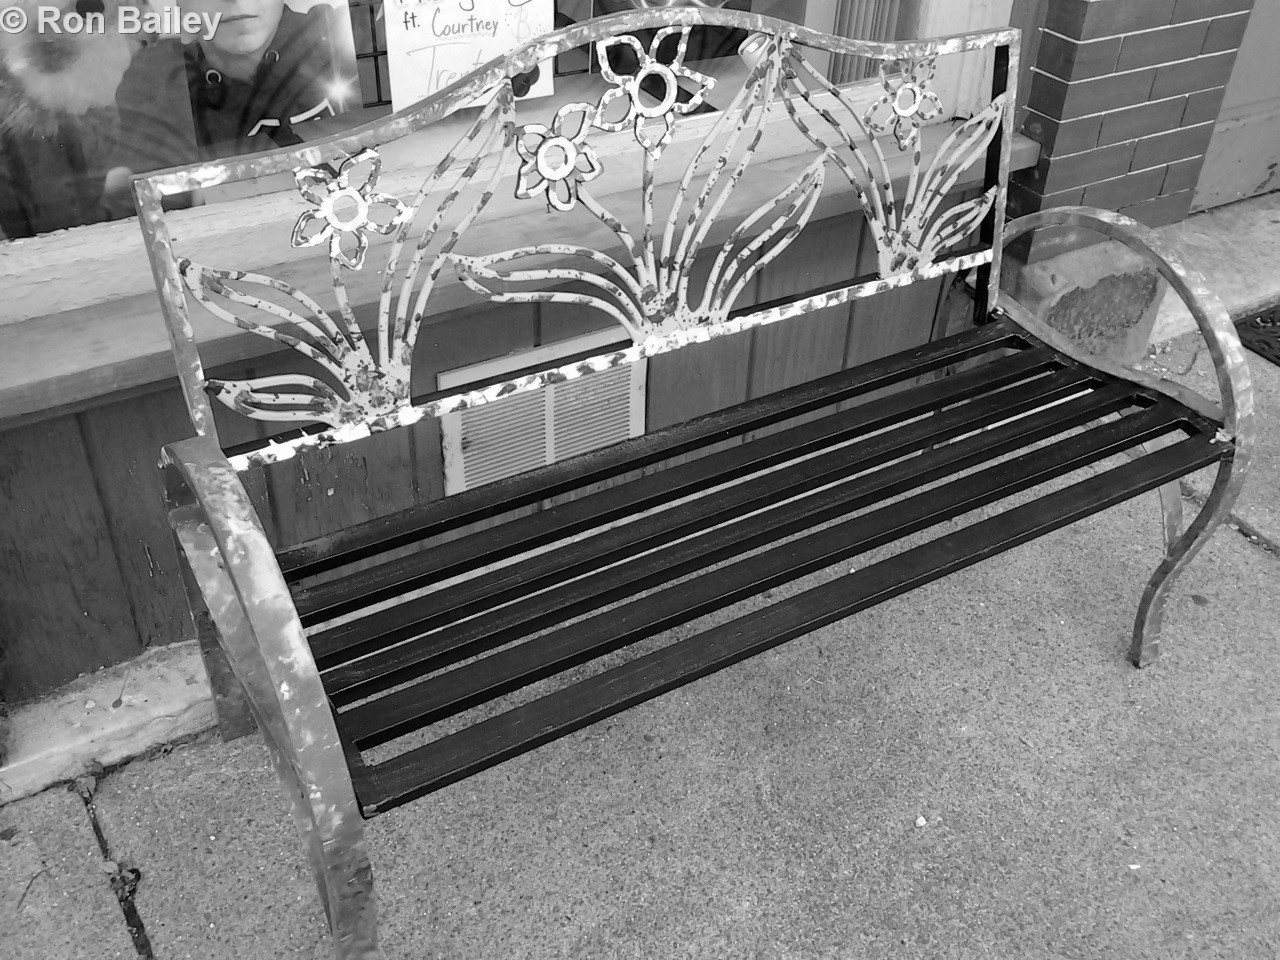 Seats in Black-and-White 7-31-2017 12-45-50 PM